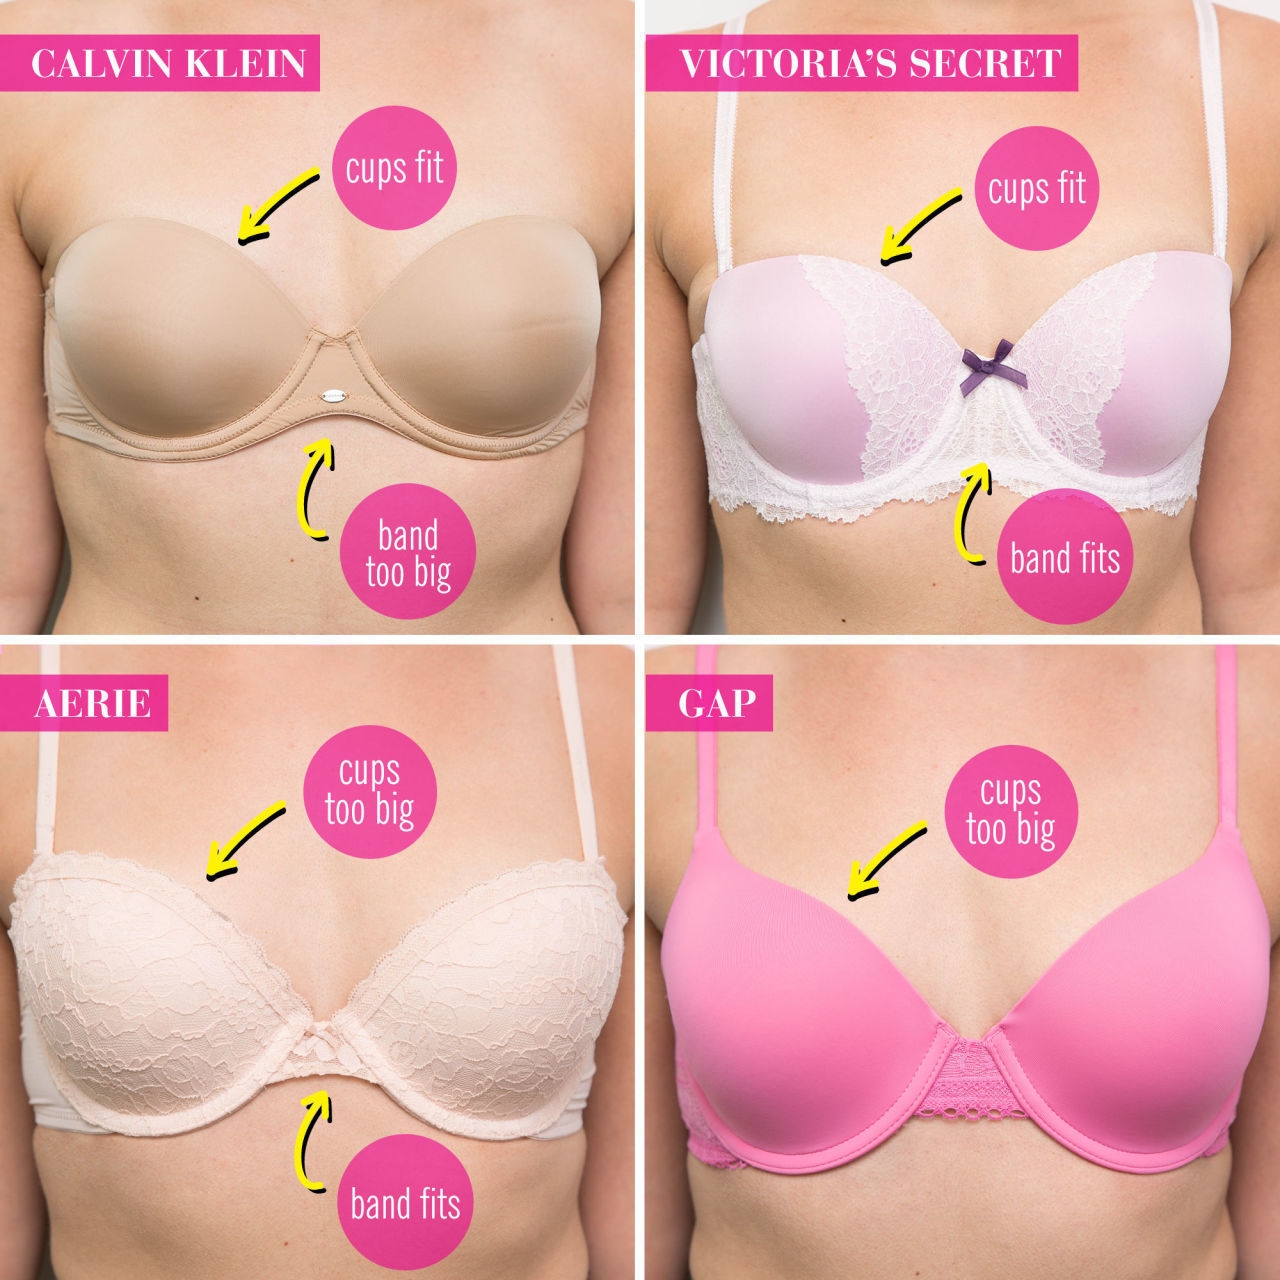 A 32C bra actually is the same CUP size as a 34B or a 36A. The band sizes are just different. You see, since the back size (or band size) is directly proportional to the cup size, the smaller the band size is, the smaller the cup volume has to be.